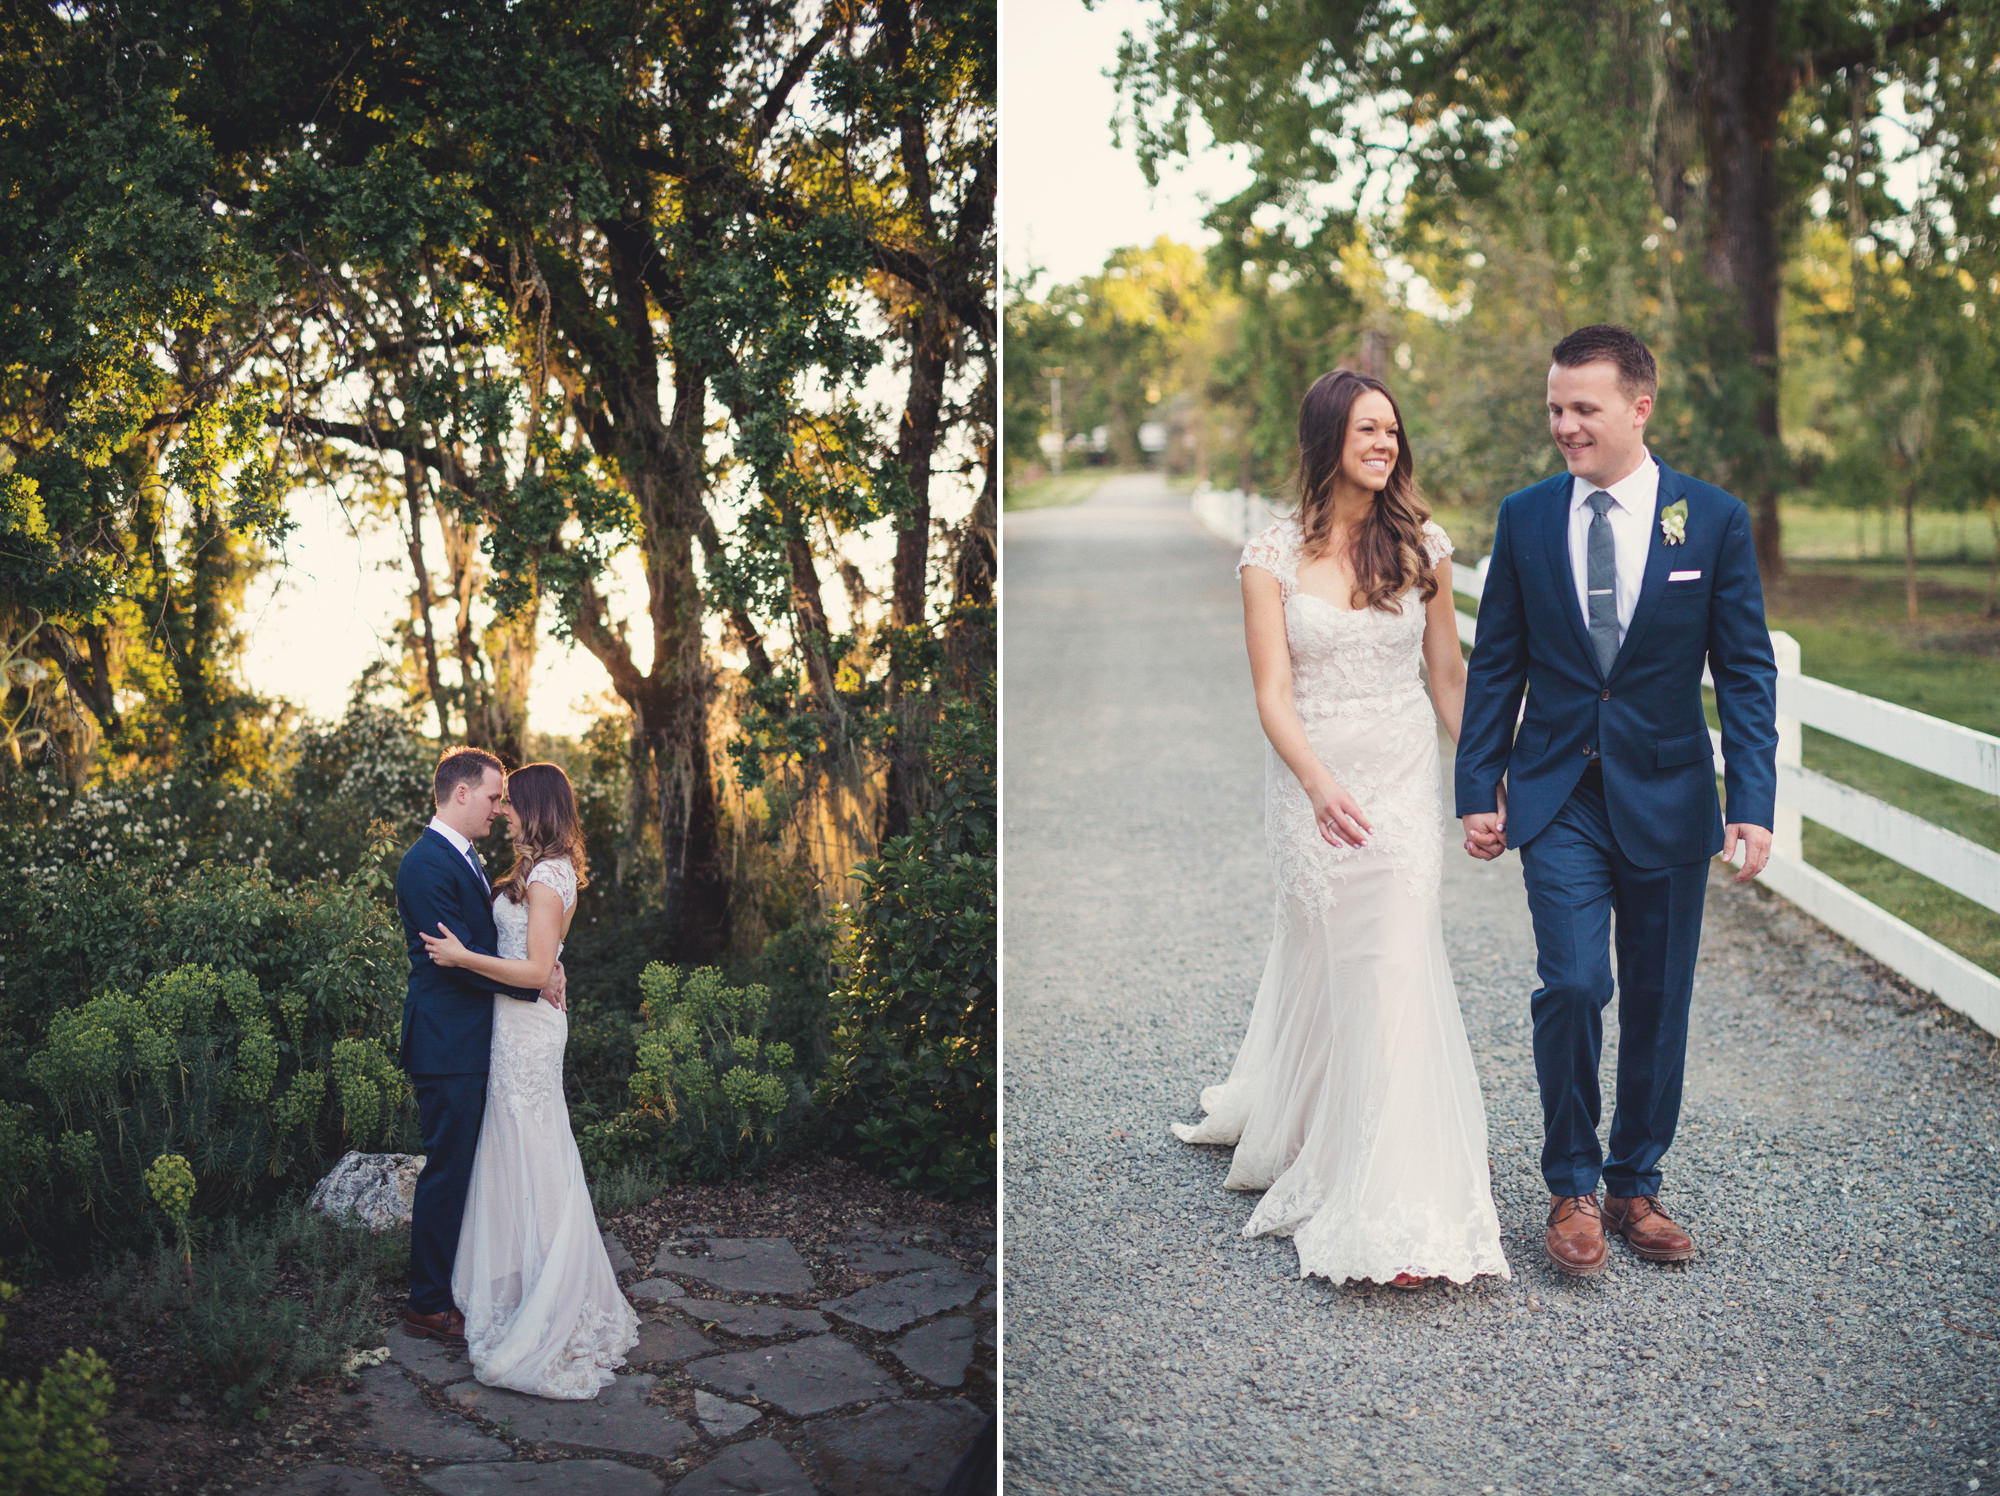 Wedding in Campovida @Anne-Claire Brun 131